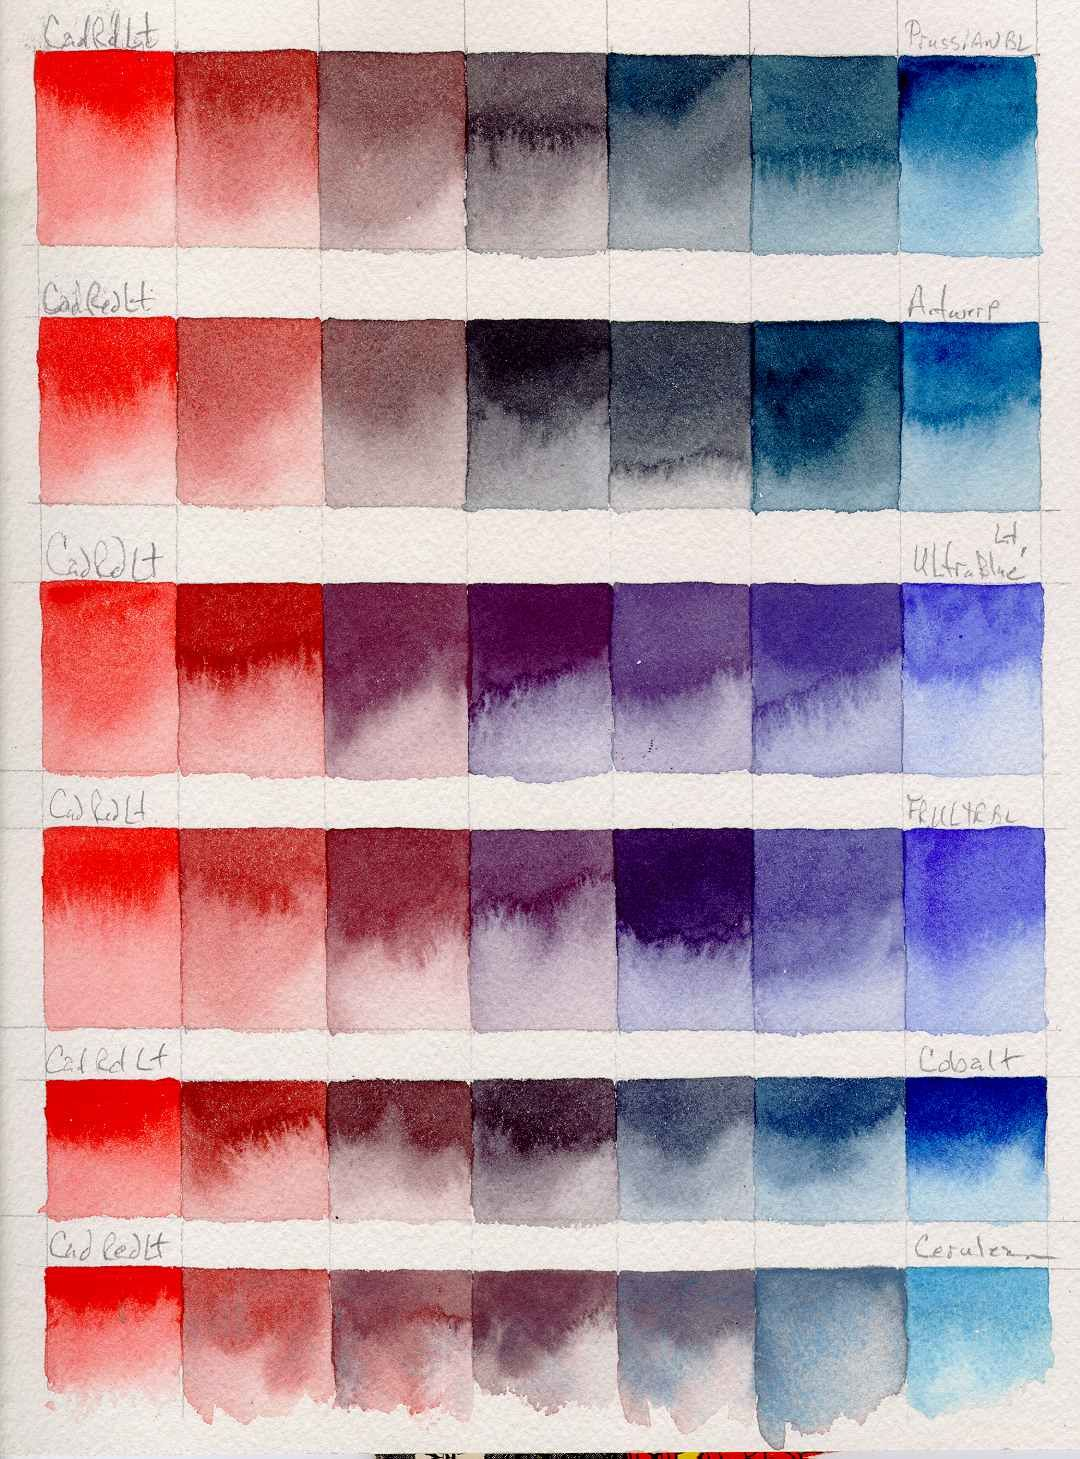 mixing red and blue does not always produce purple purple color